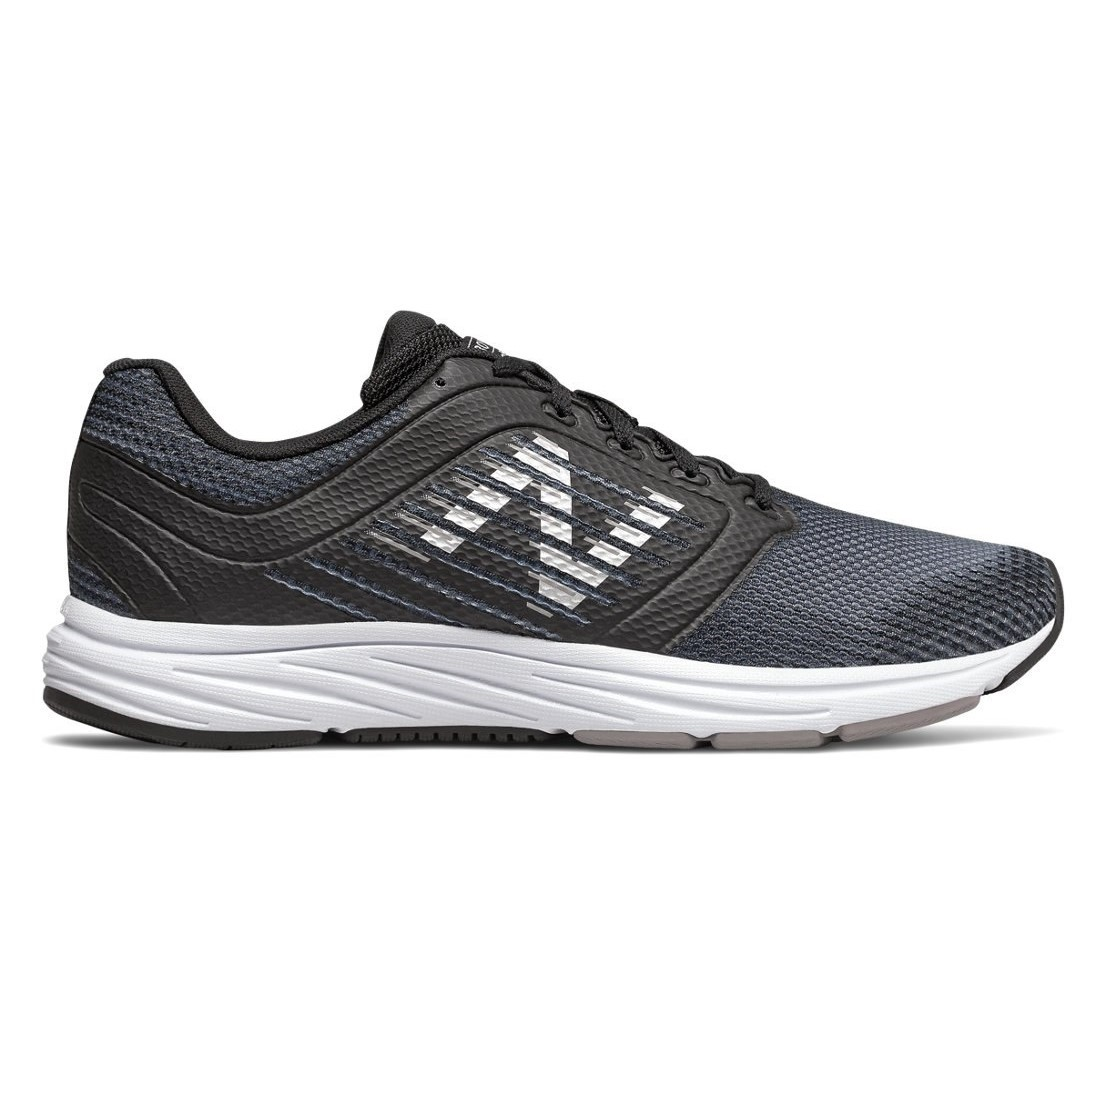 0ee5b88913072 New Balance 480v6 - Mens Running Shoes - Black/Blue/White | Sportitude